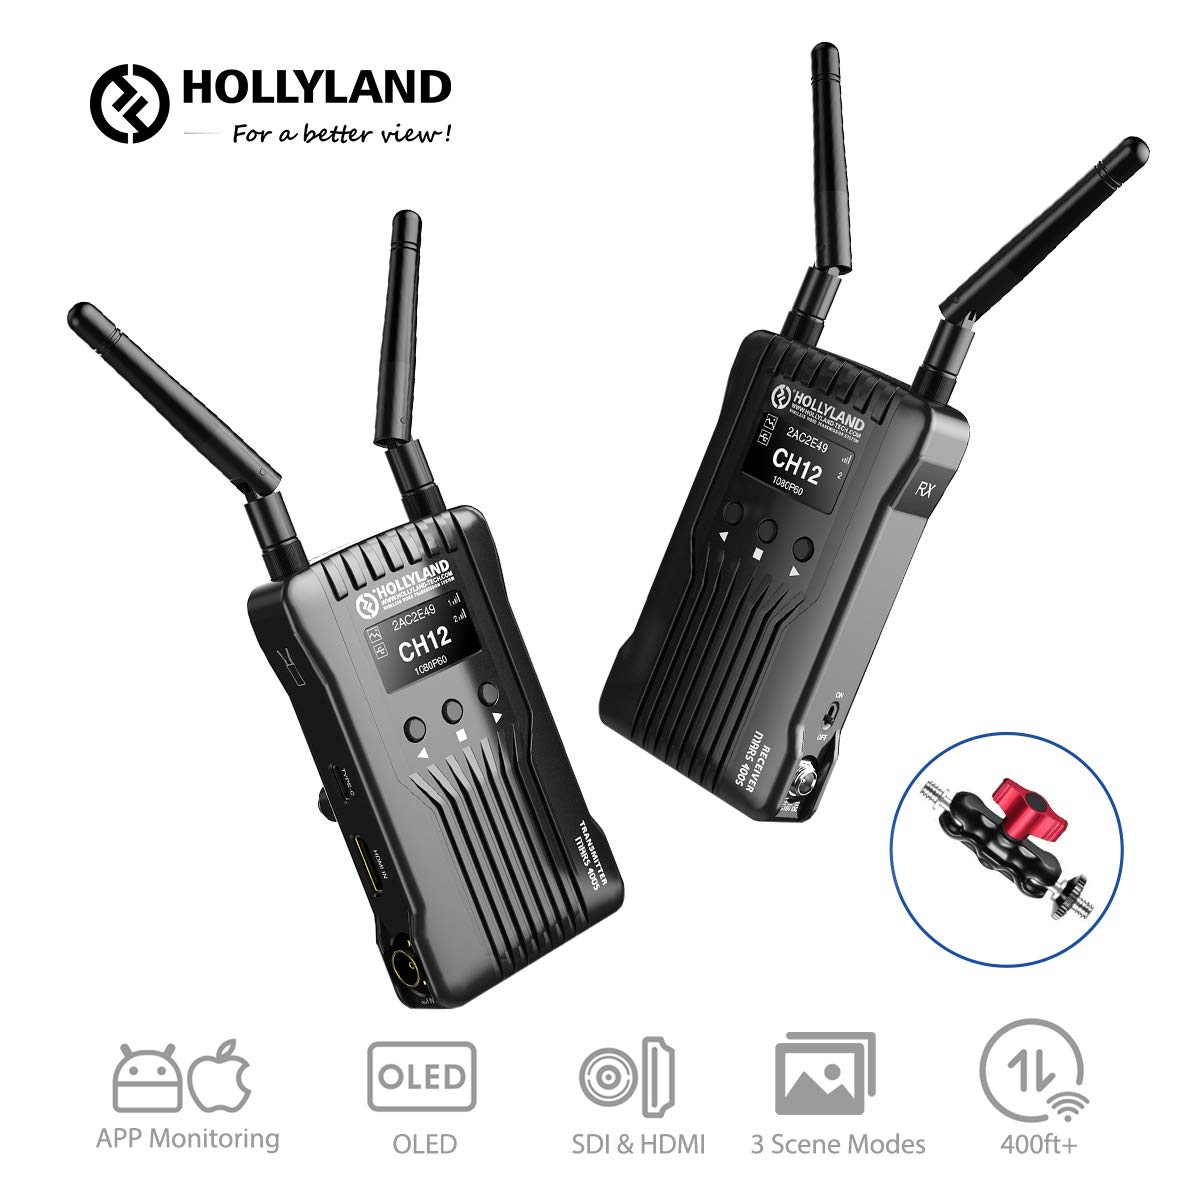 Hollyland Mars 400S Wireless SDI HDMI Video Transmission System, iOS & Android App Monitoring with OLED Display, 400ft 3 Scene Modes for External On-Camera Monitor DSLR Mirrorless Camera Gimbal by Hollyland